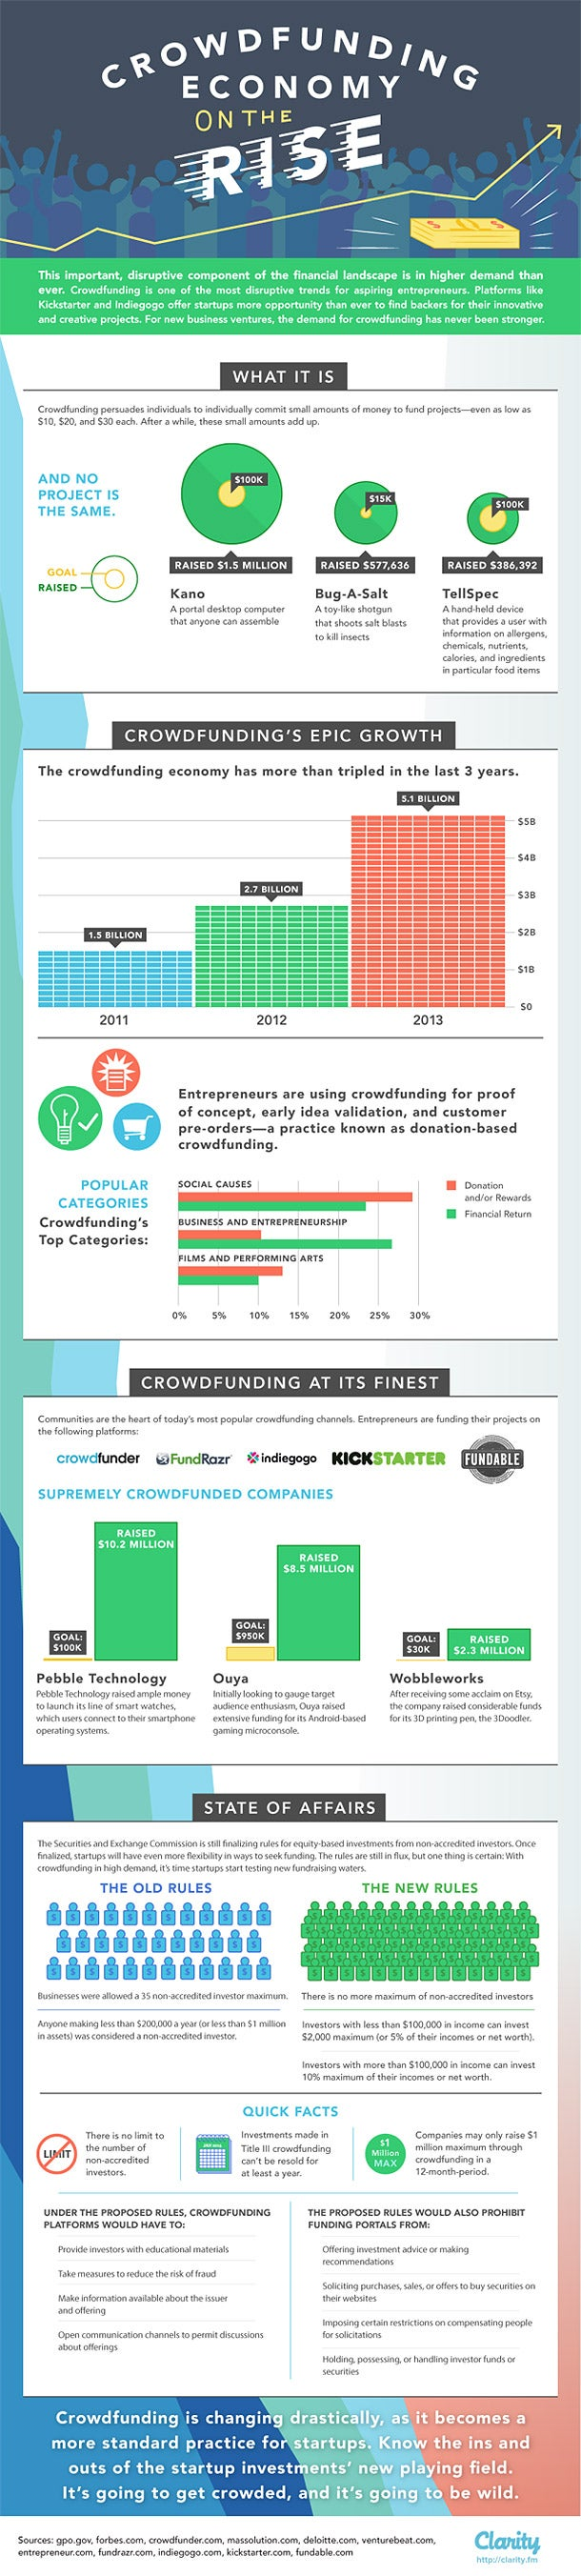 Business crowdfunding cheat sheet infographic from Entrepreneur